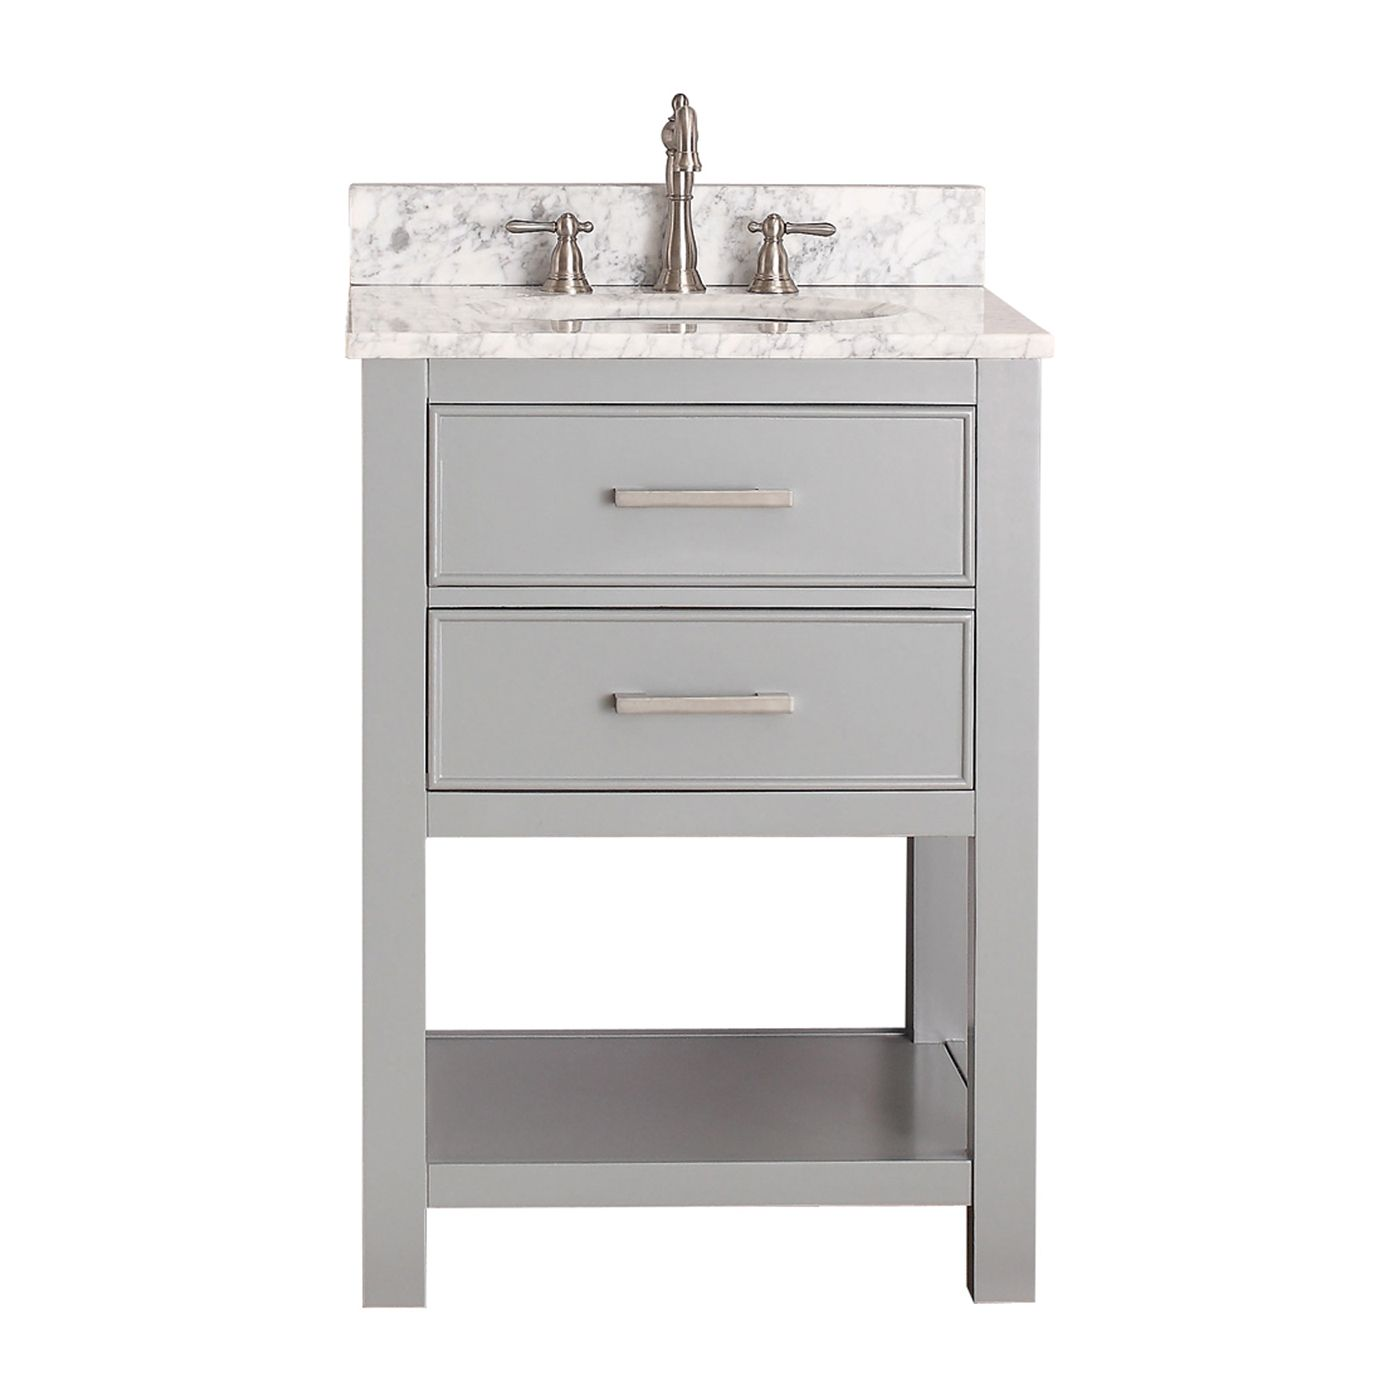 Bathroom Vanity Combos Sale avanity brooks-v24 brooks 24-in bathroom vanity only | atg stores